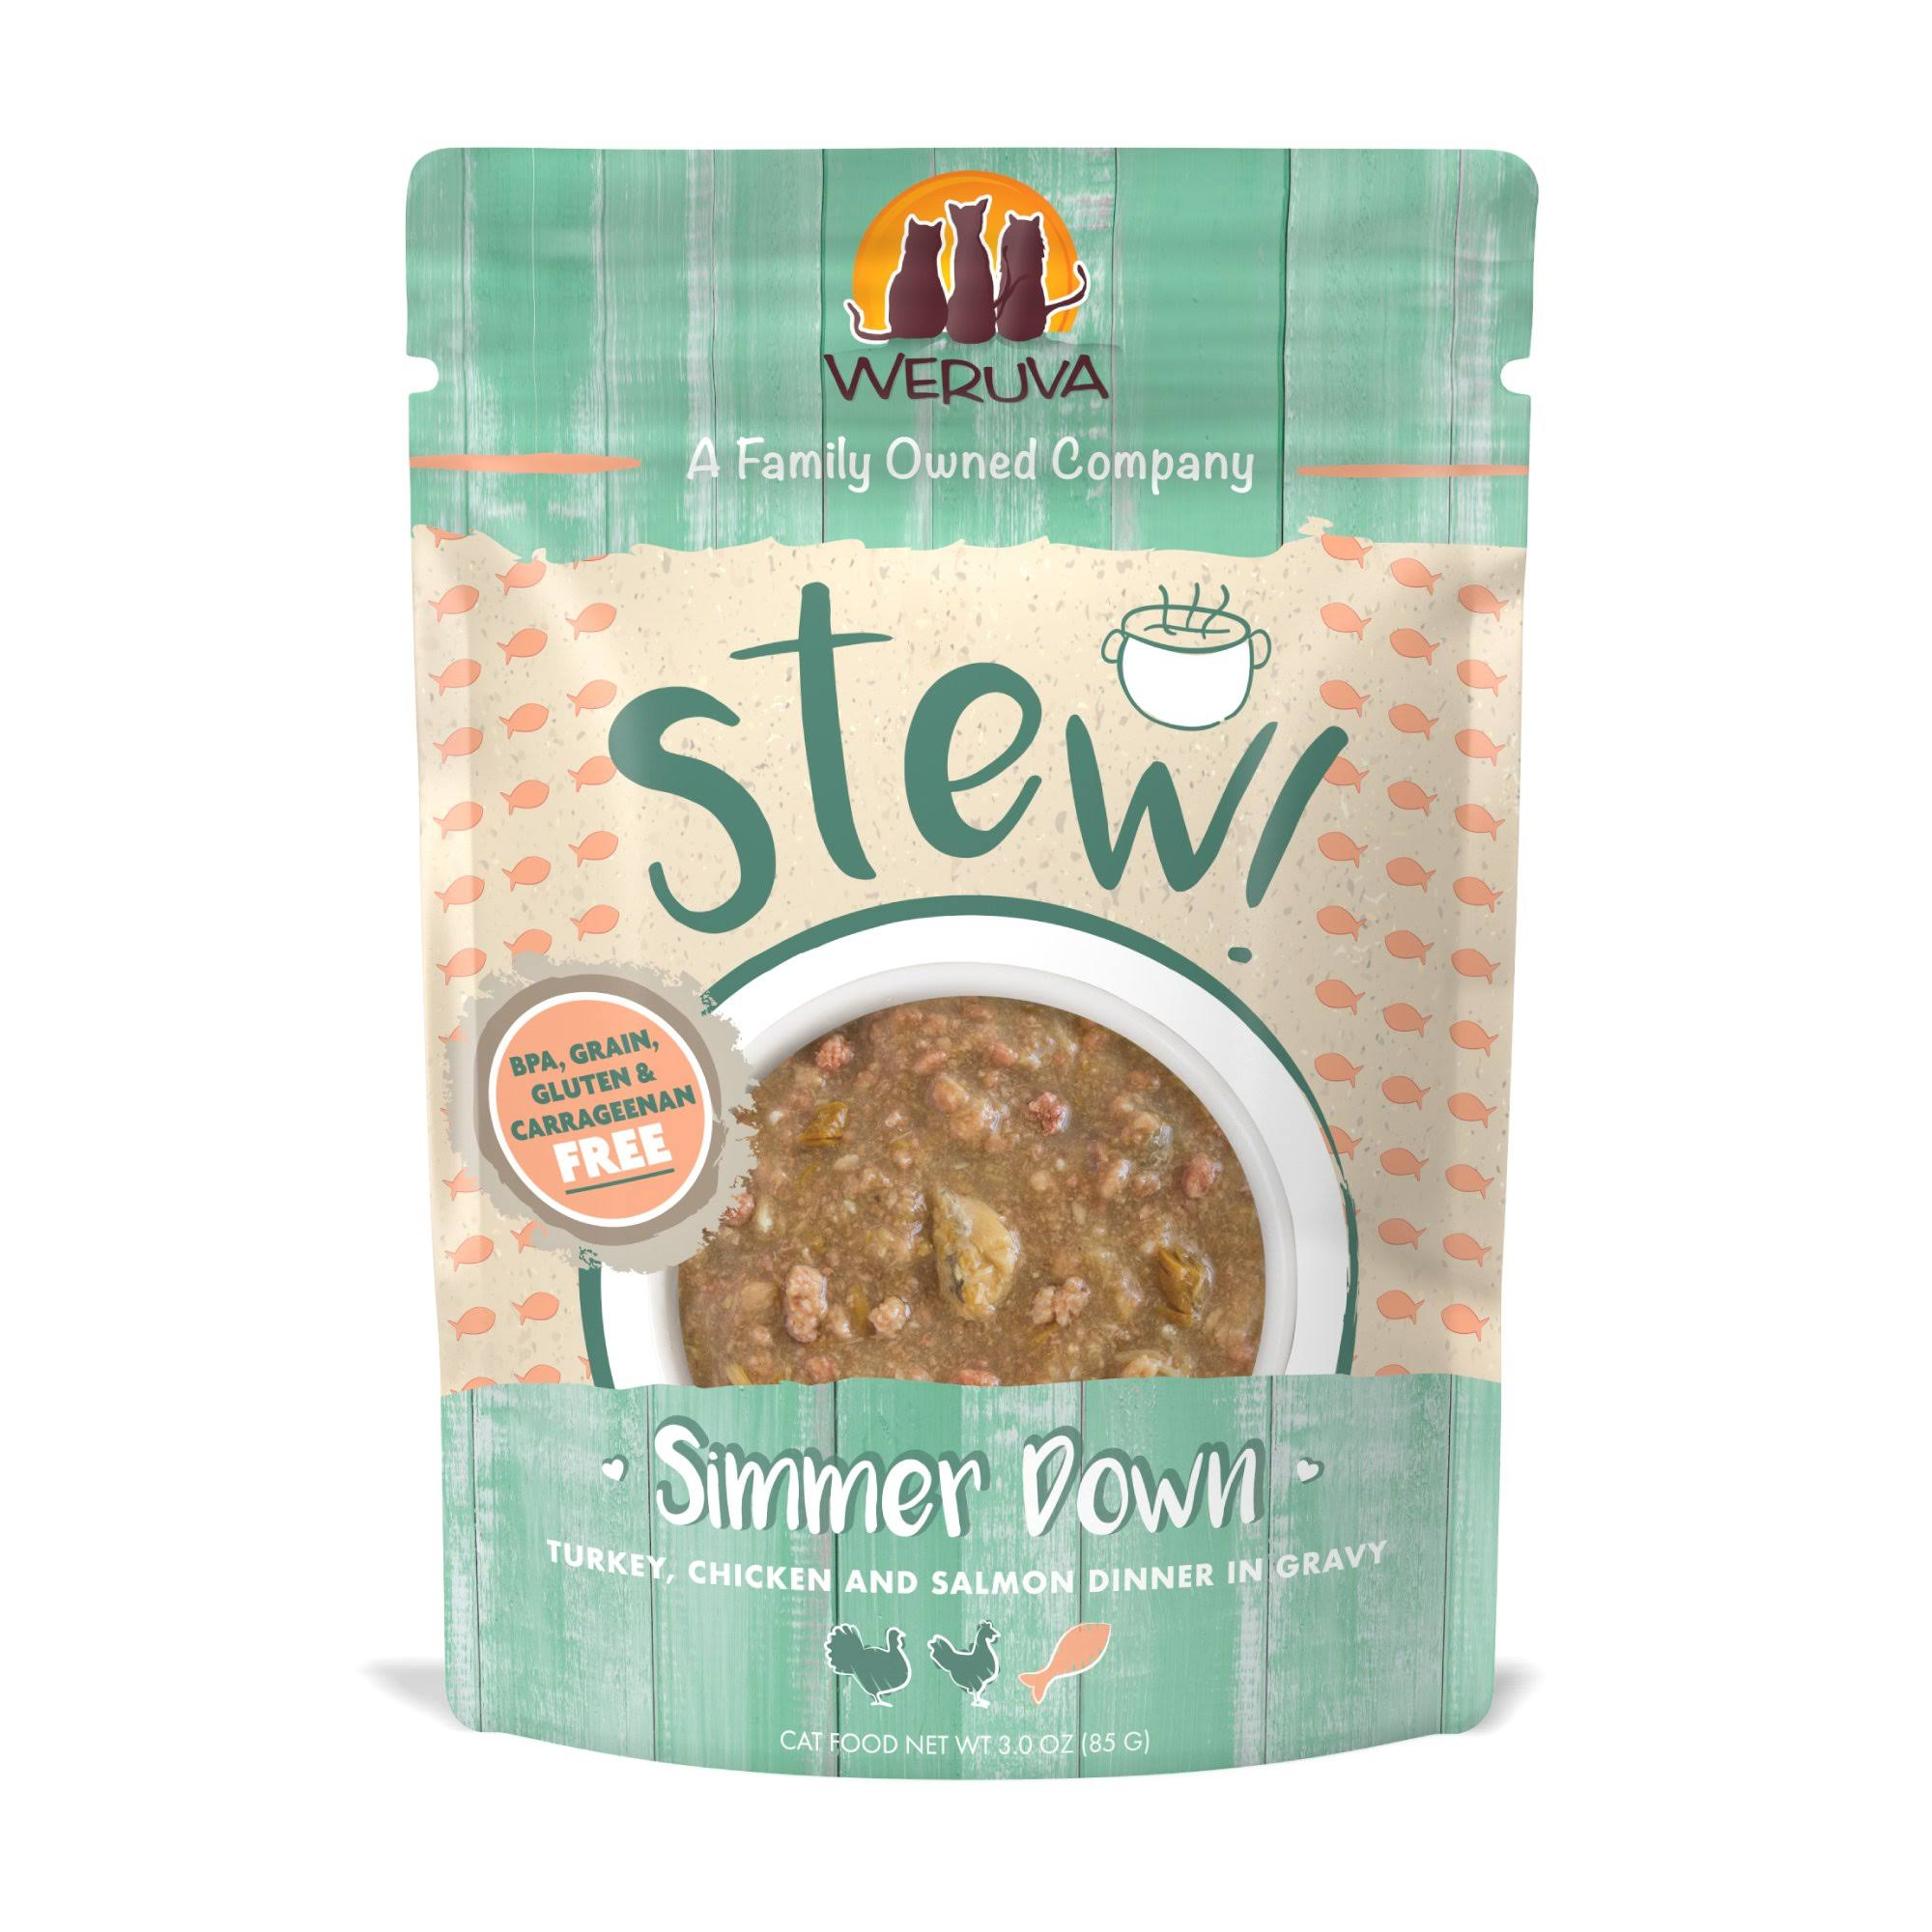 Weruva Stew! Simmer Down Turkey, Chicken and Salmon Dinner Wet Cat Food, 3 oz.